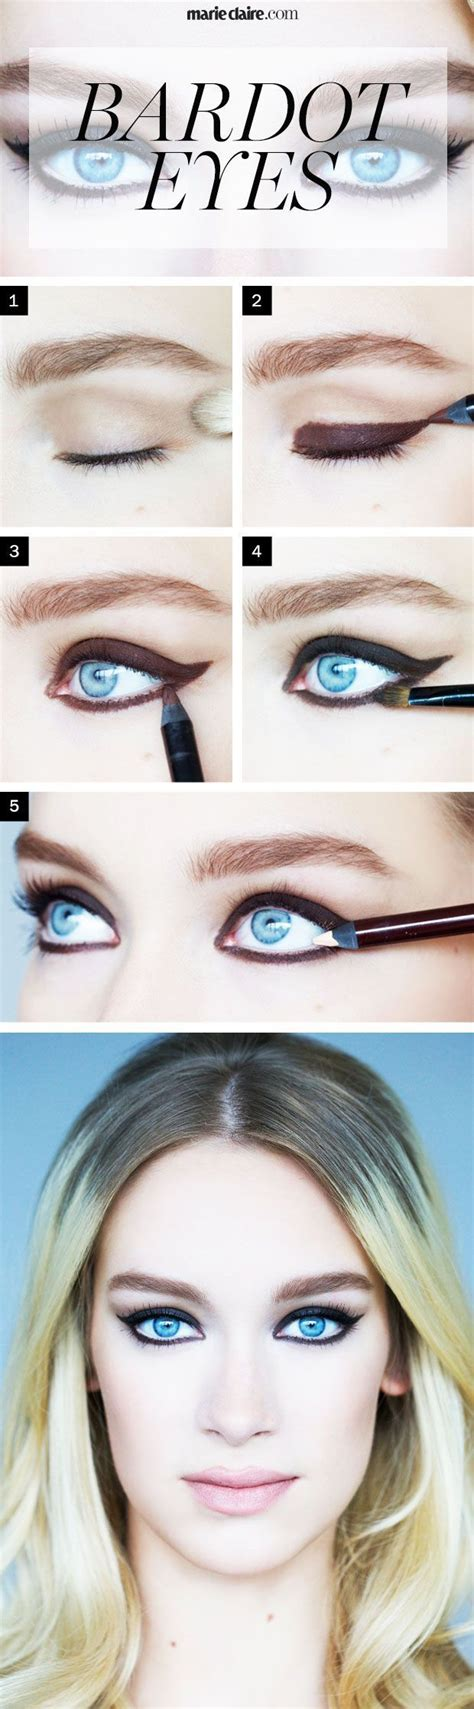 tuesday tutorial 4 makeup tips for four eyed gals how to get bardot eyes perfect cat eye makeup tutorials